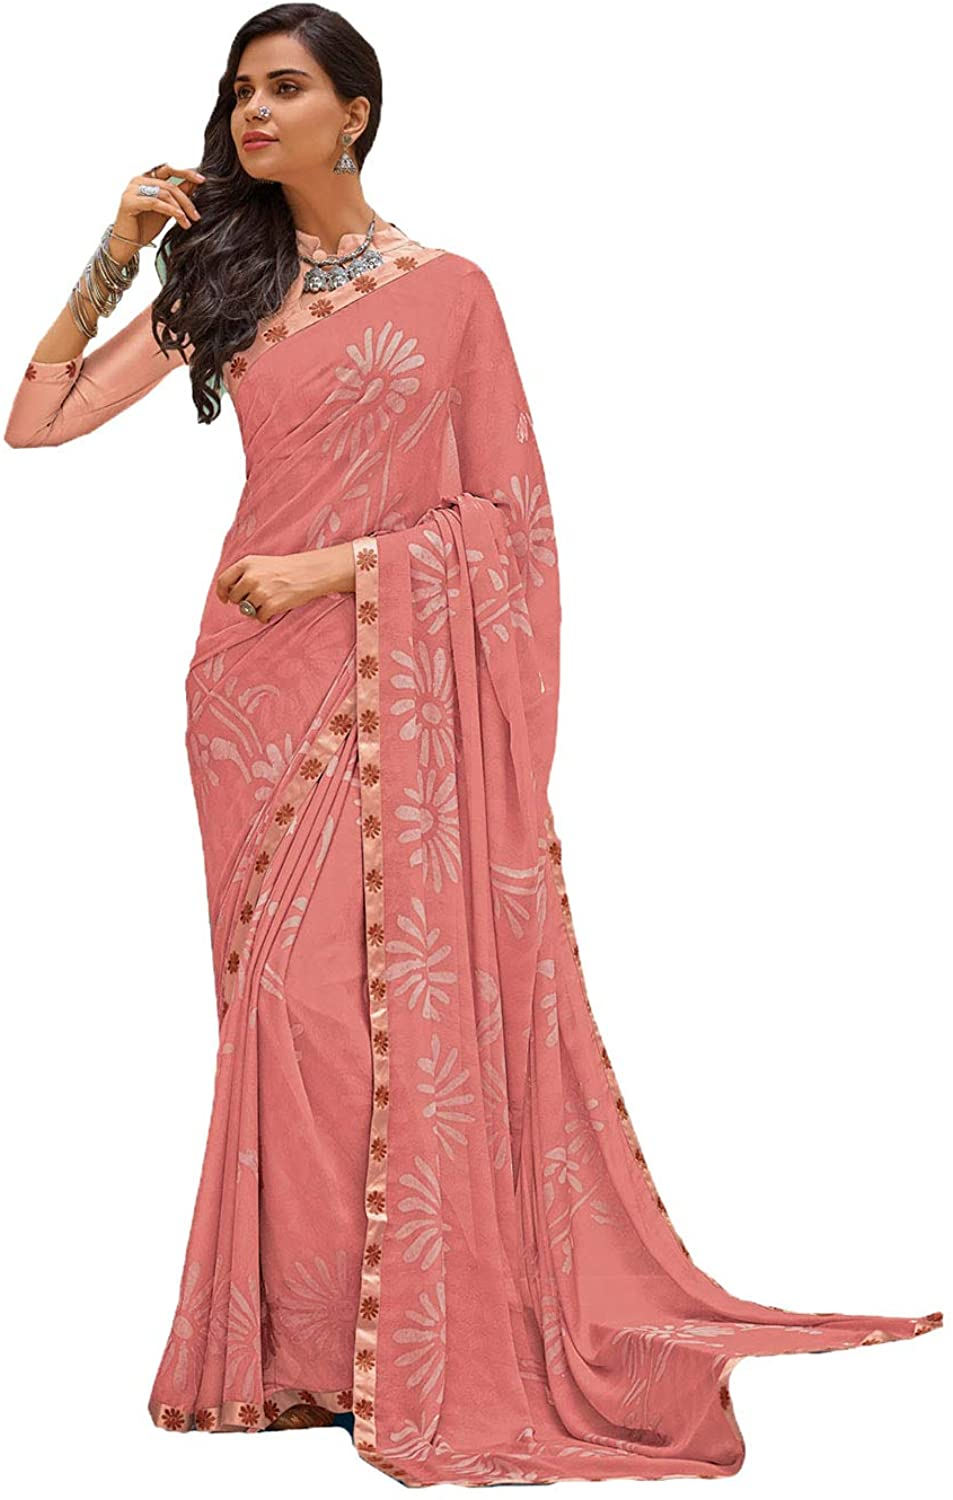 Saree for Women Bollywood Wedding Designer Peach Sari with Unstitched Blouse. ICW2524-5